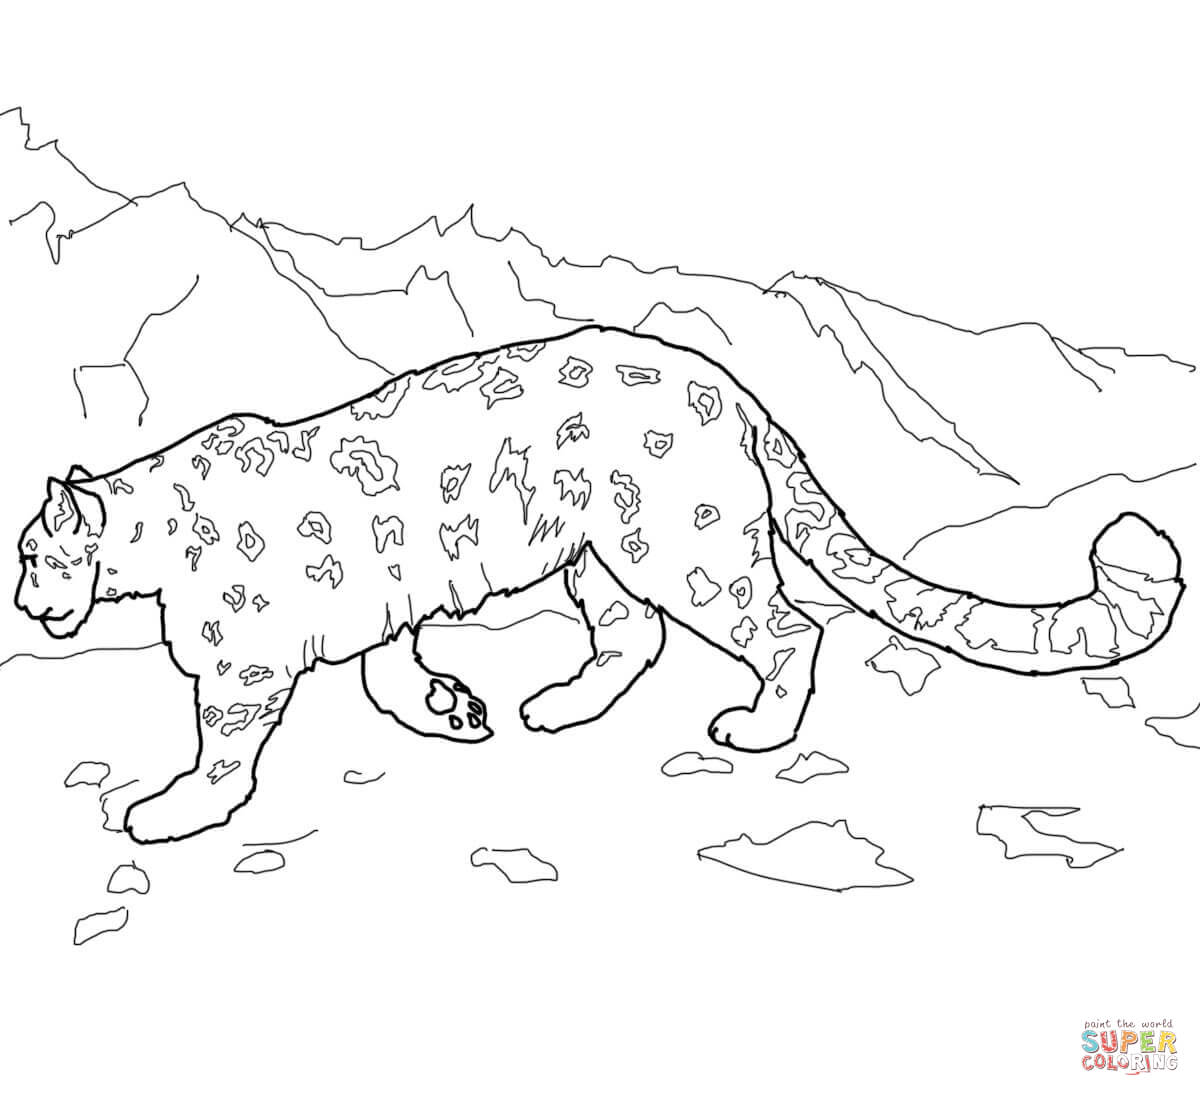 Leopard coloring #13, Download drawings